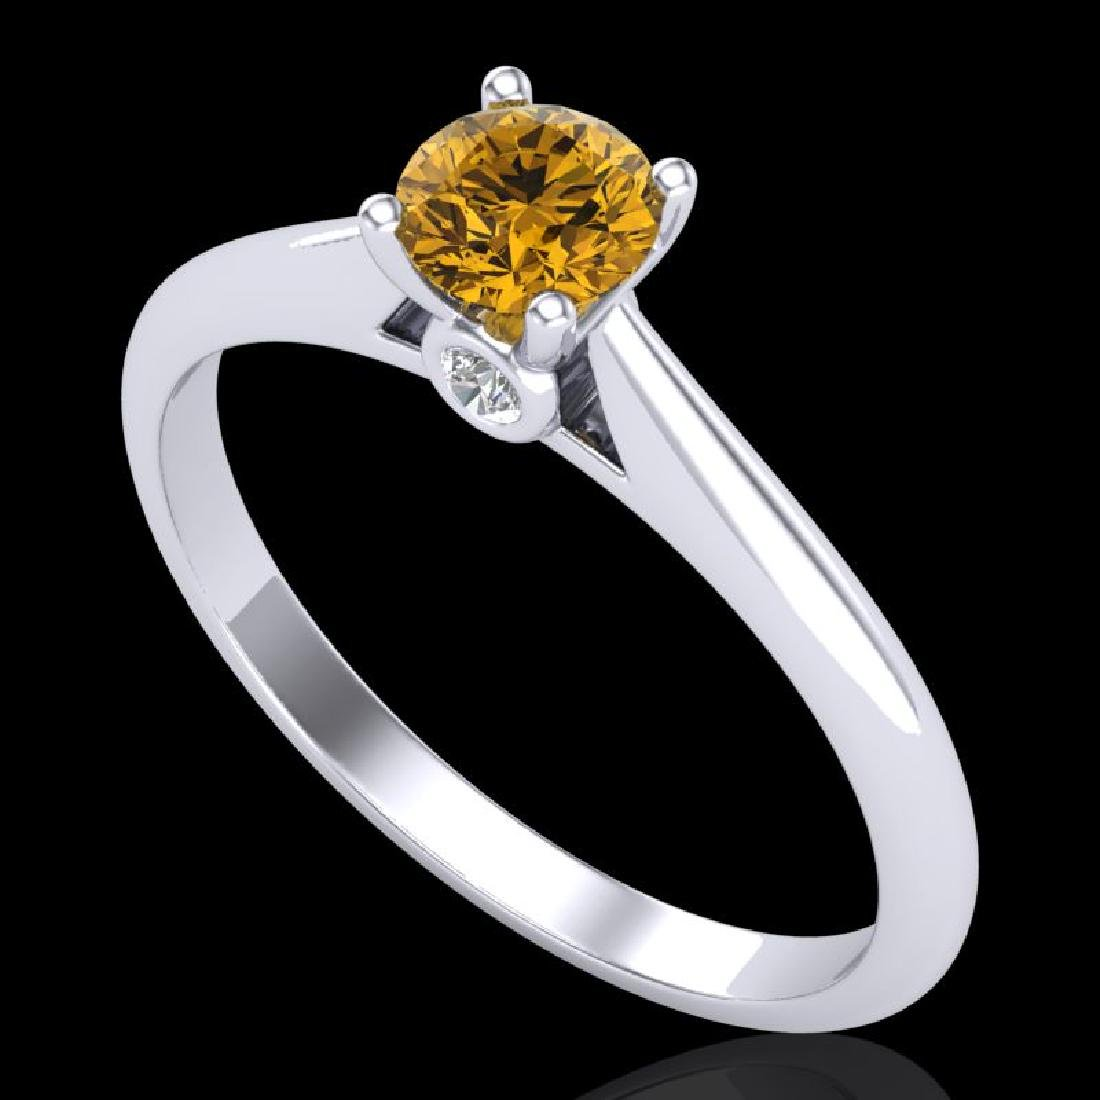 0.4 CTW Intense Fancy Yellow Diamond Engagement Art